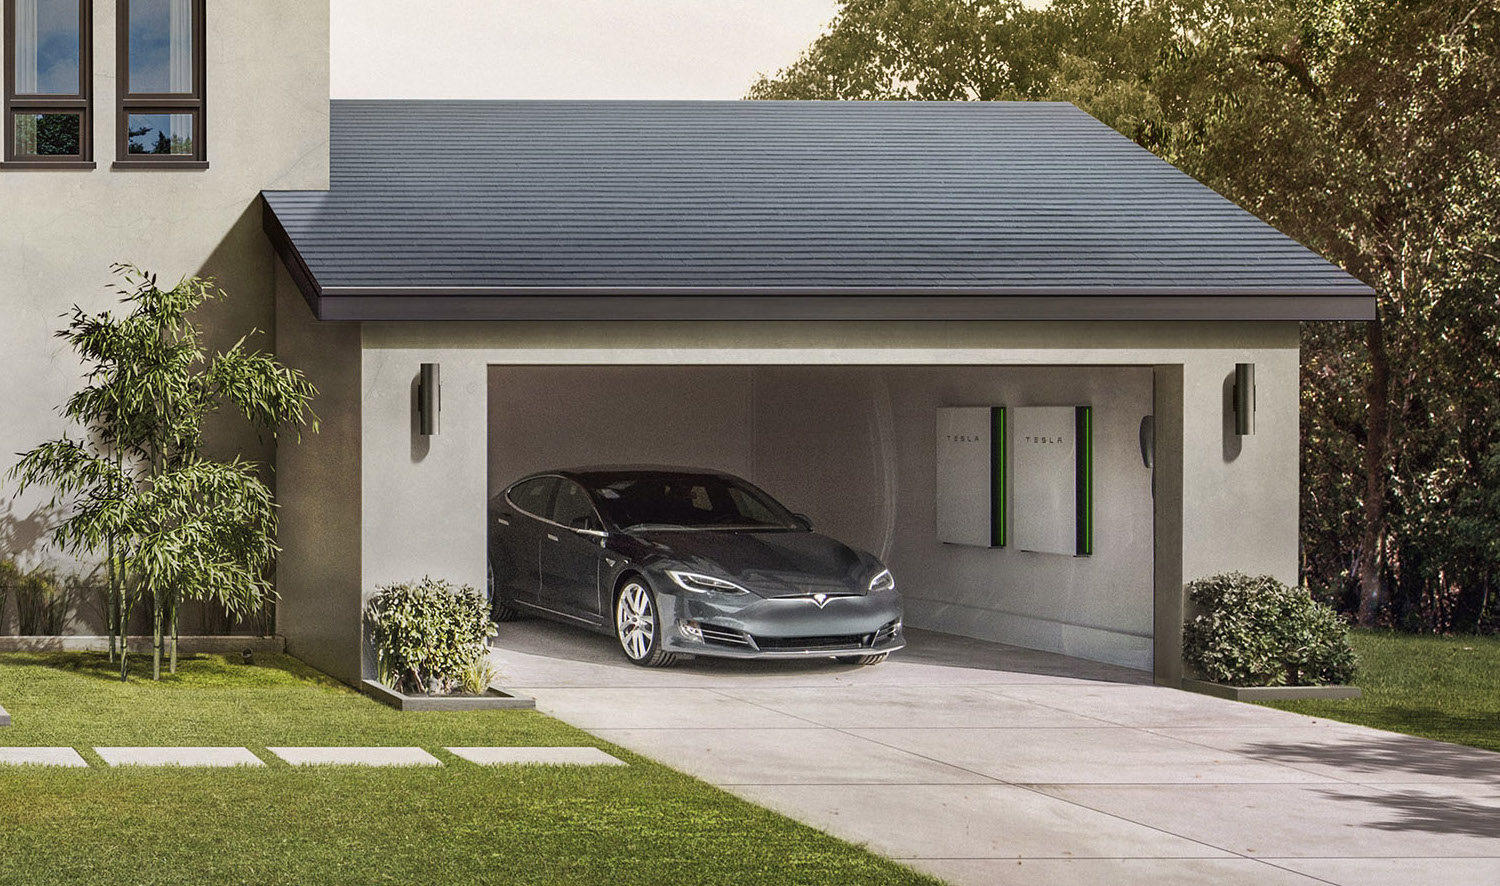 Tesla s entry into solar could be challenged by lobbying for Panel homes prices